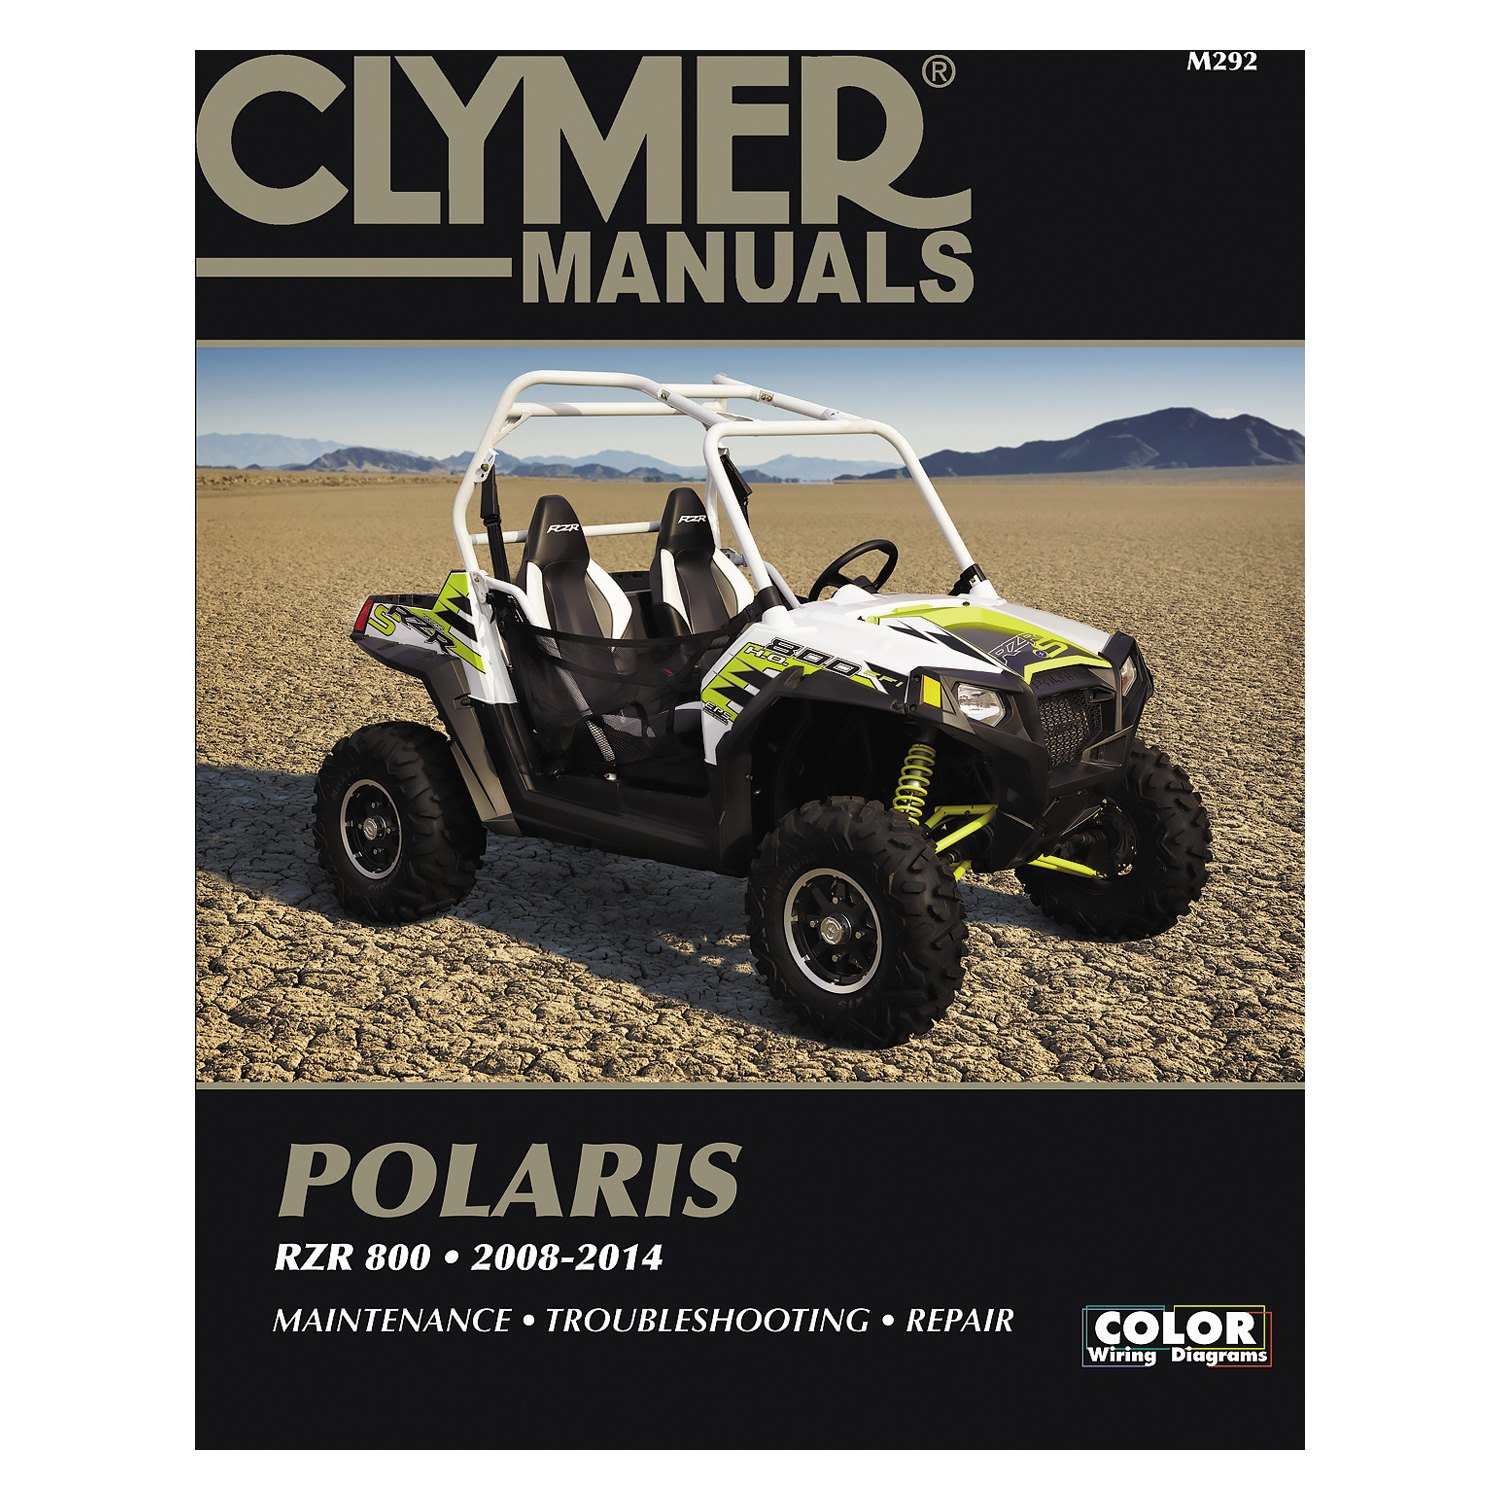 hight resolution of clymer polaris rzr 800 2008 2014 manual